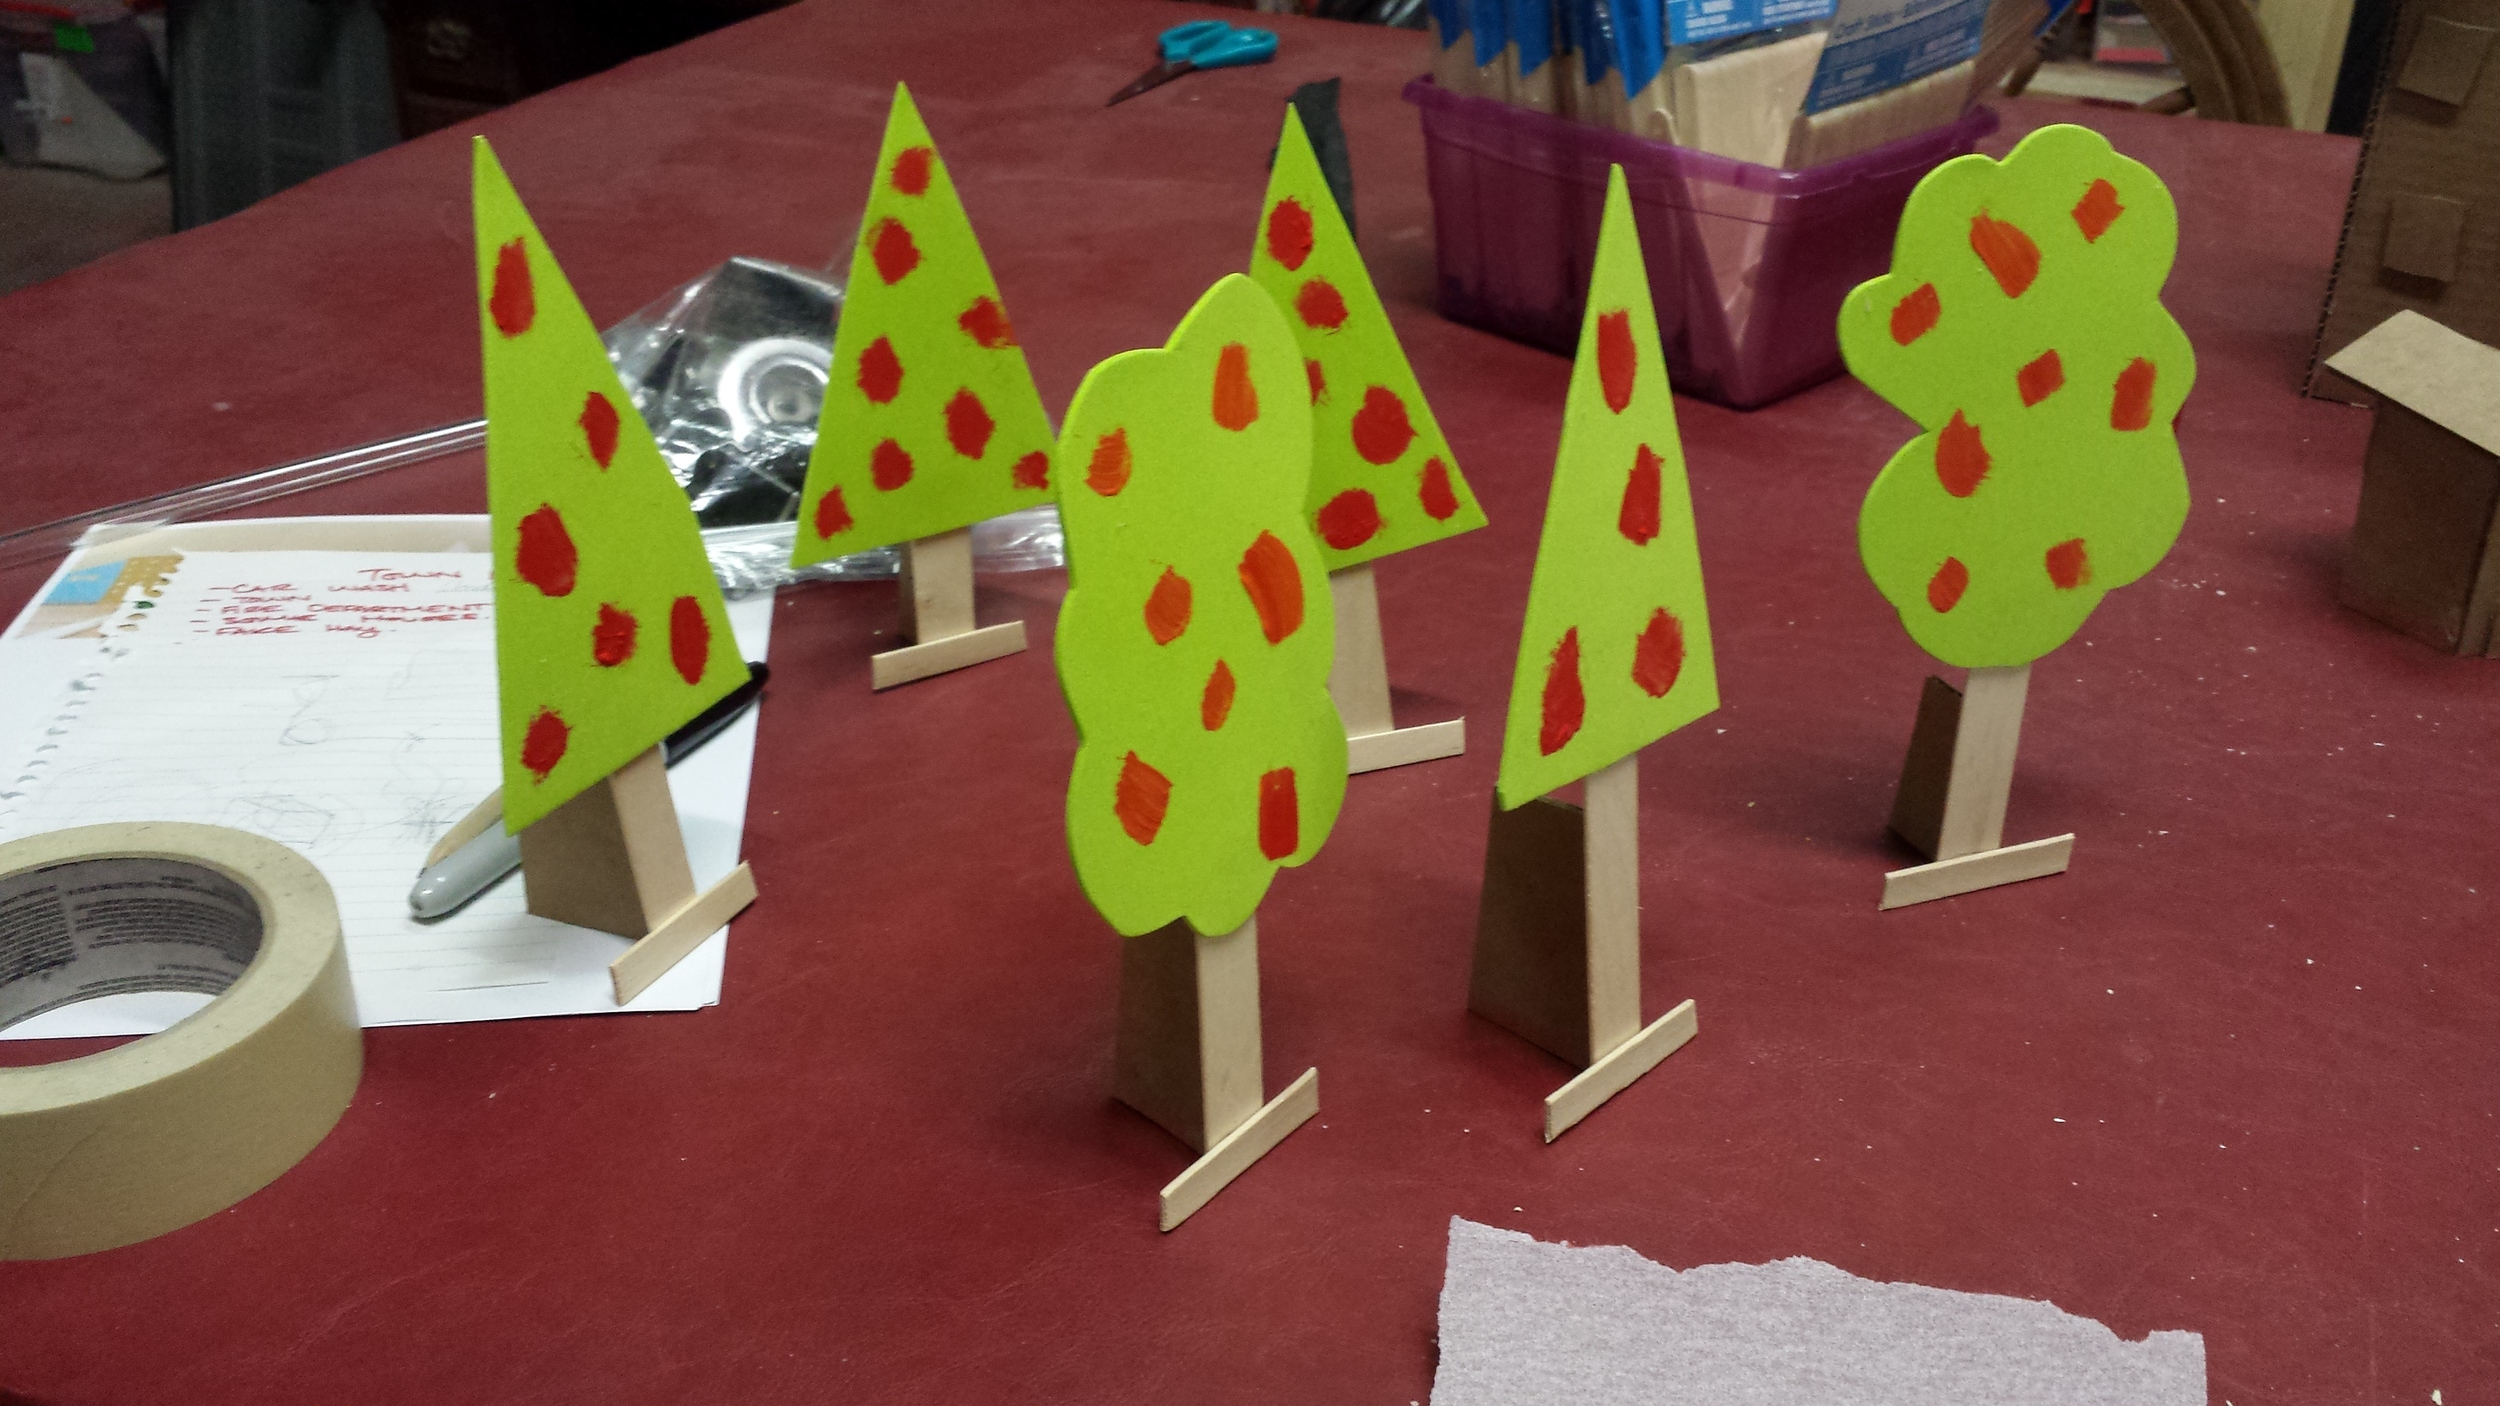 Trees for toy city to appear made by child. (Playdate 2015)